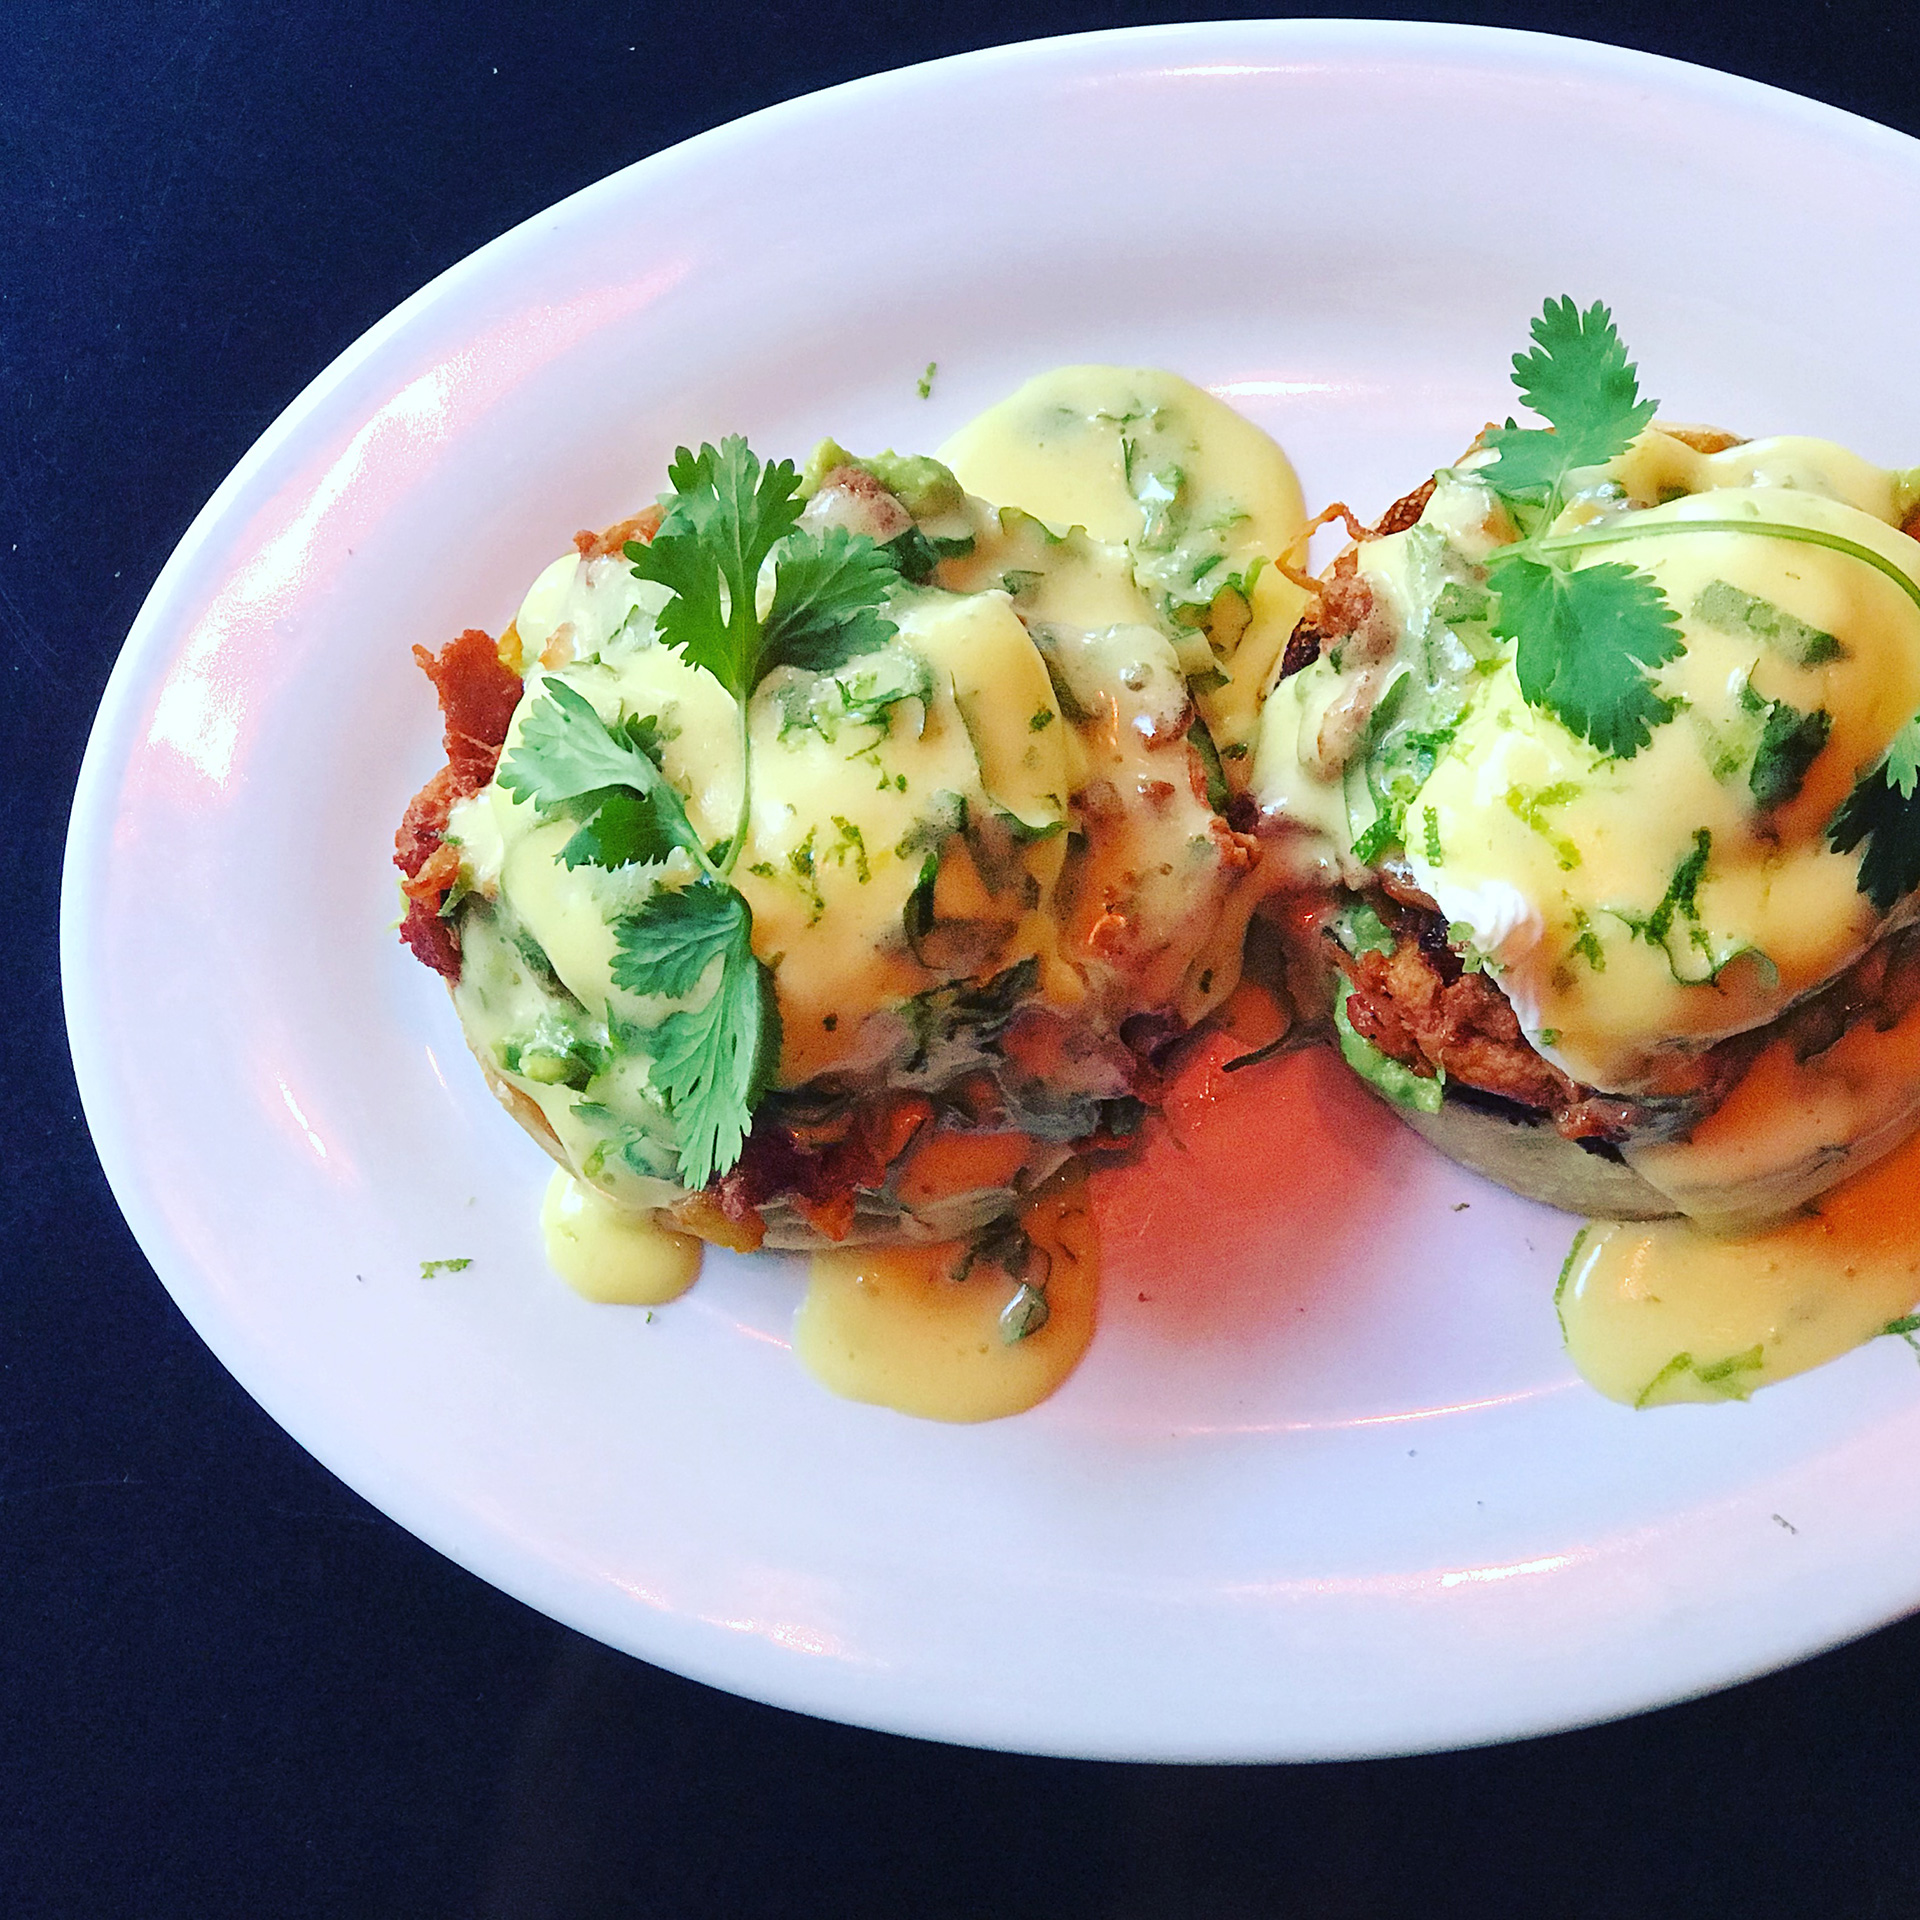 Benedict Brunch at Foxsister includes The Mission version with al pastor pork shoulder, avocado, lime, and hollandaise.